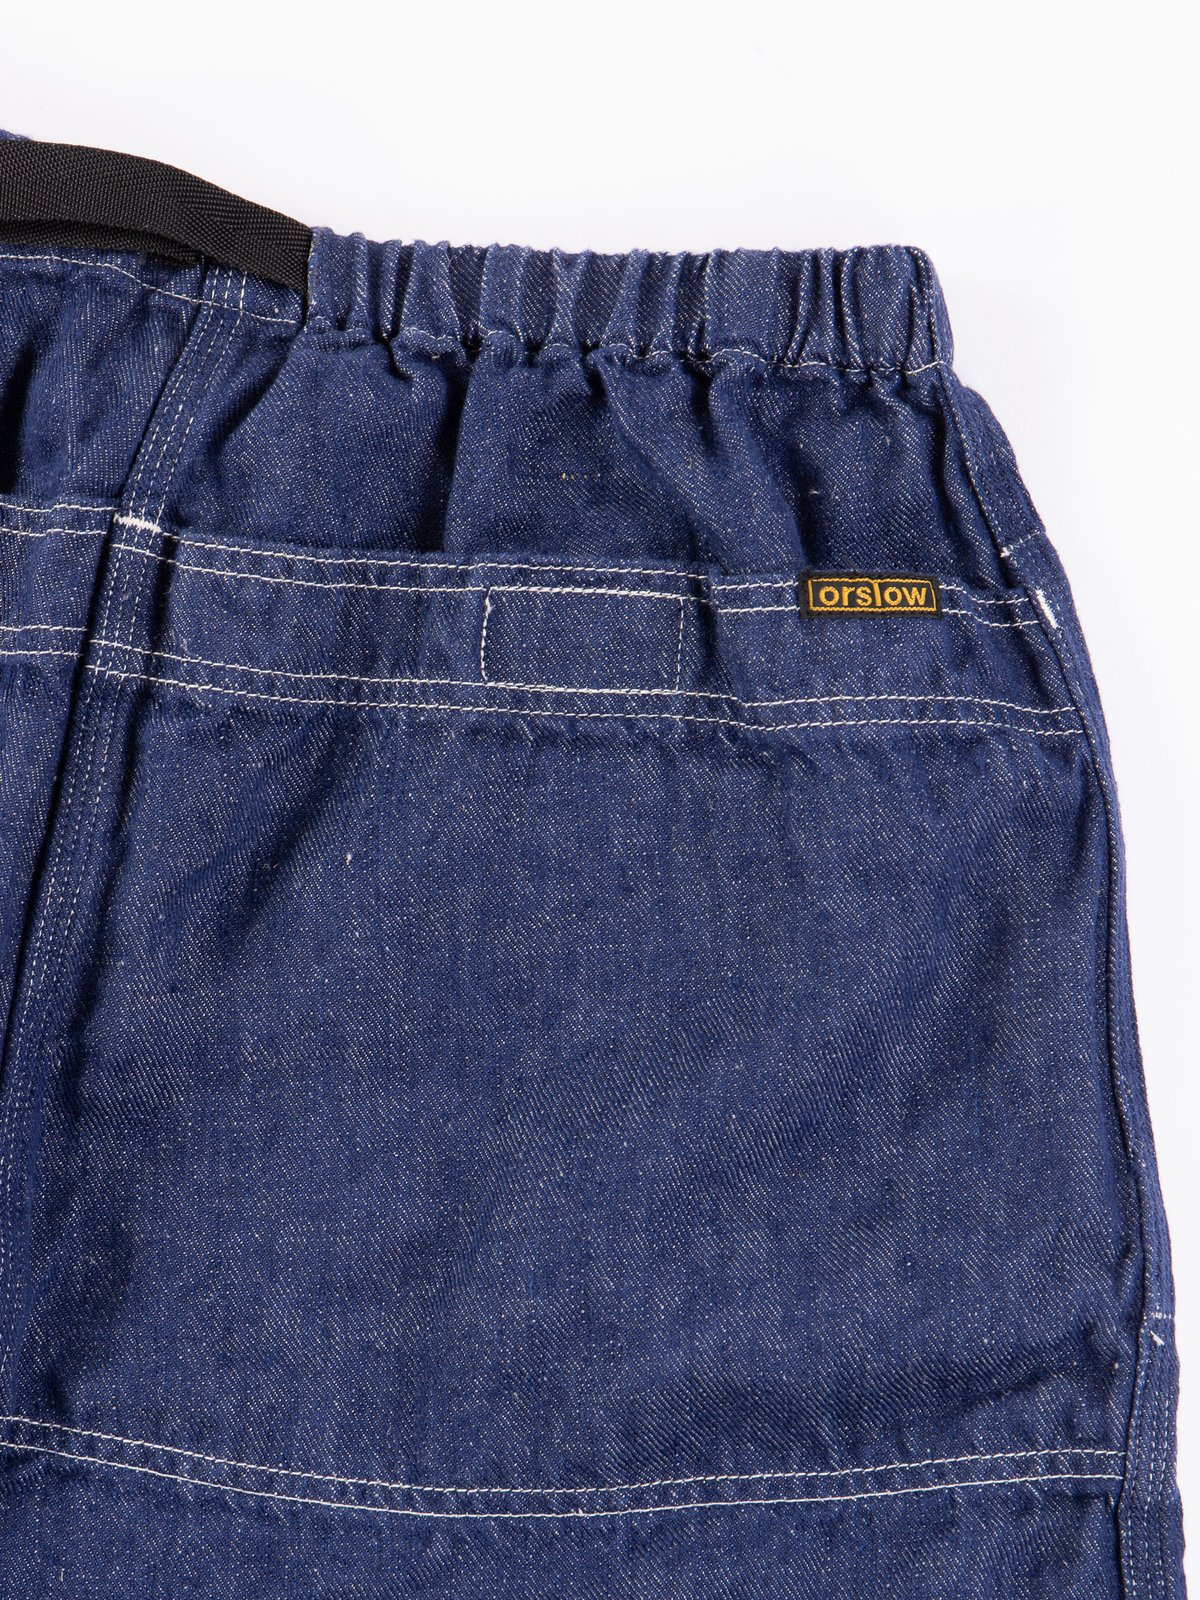 One Wash Linen Denim Climbing Short - Image 4